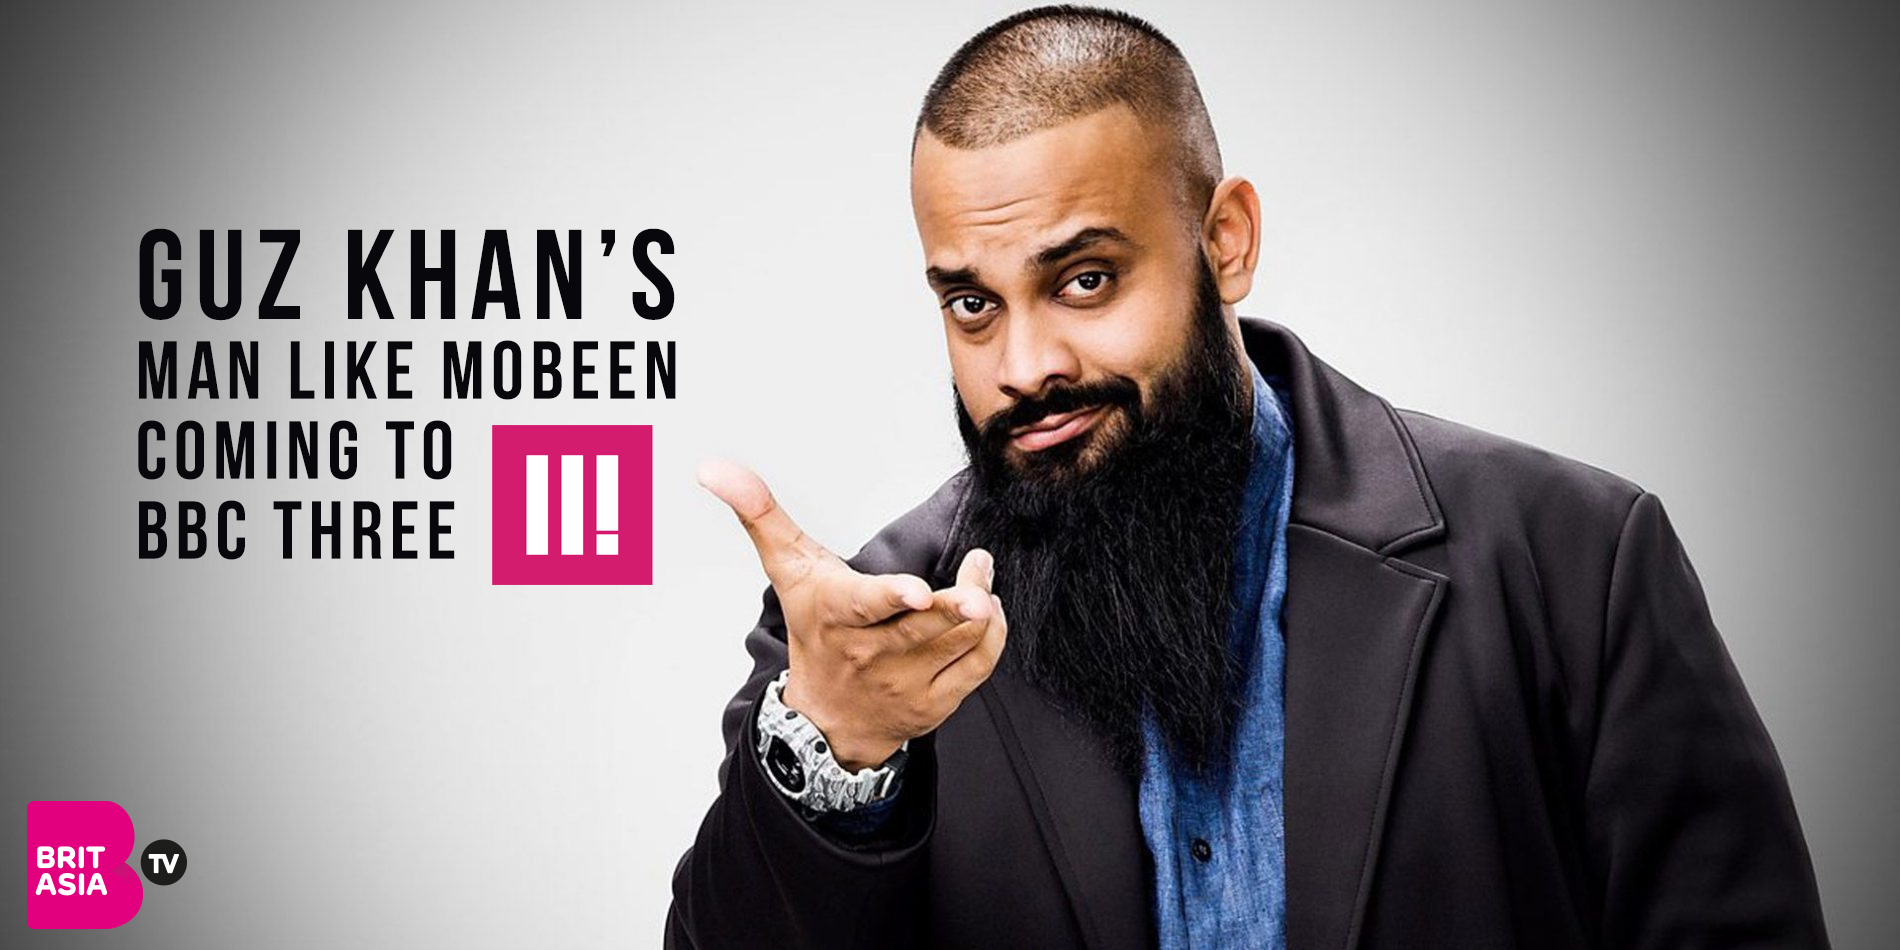 GUZ KHAN'S 'MAN LIKE MOBEEN' COMING TO BBC THREE